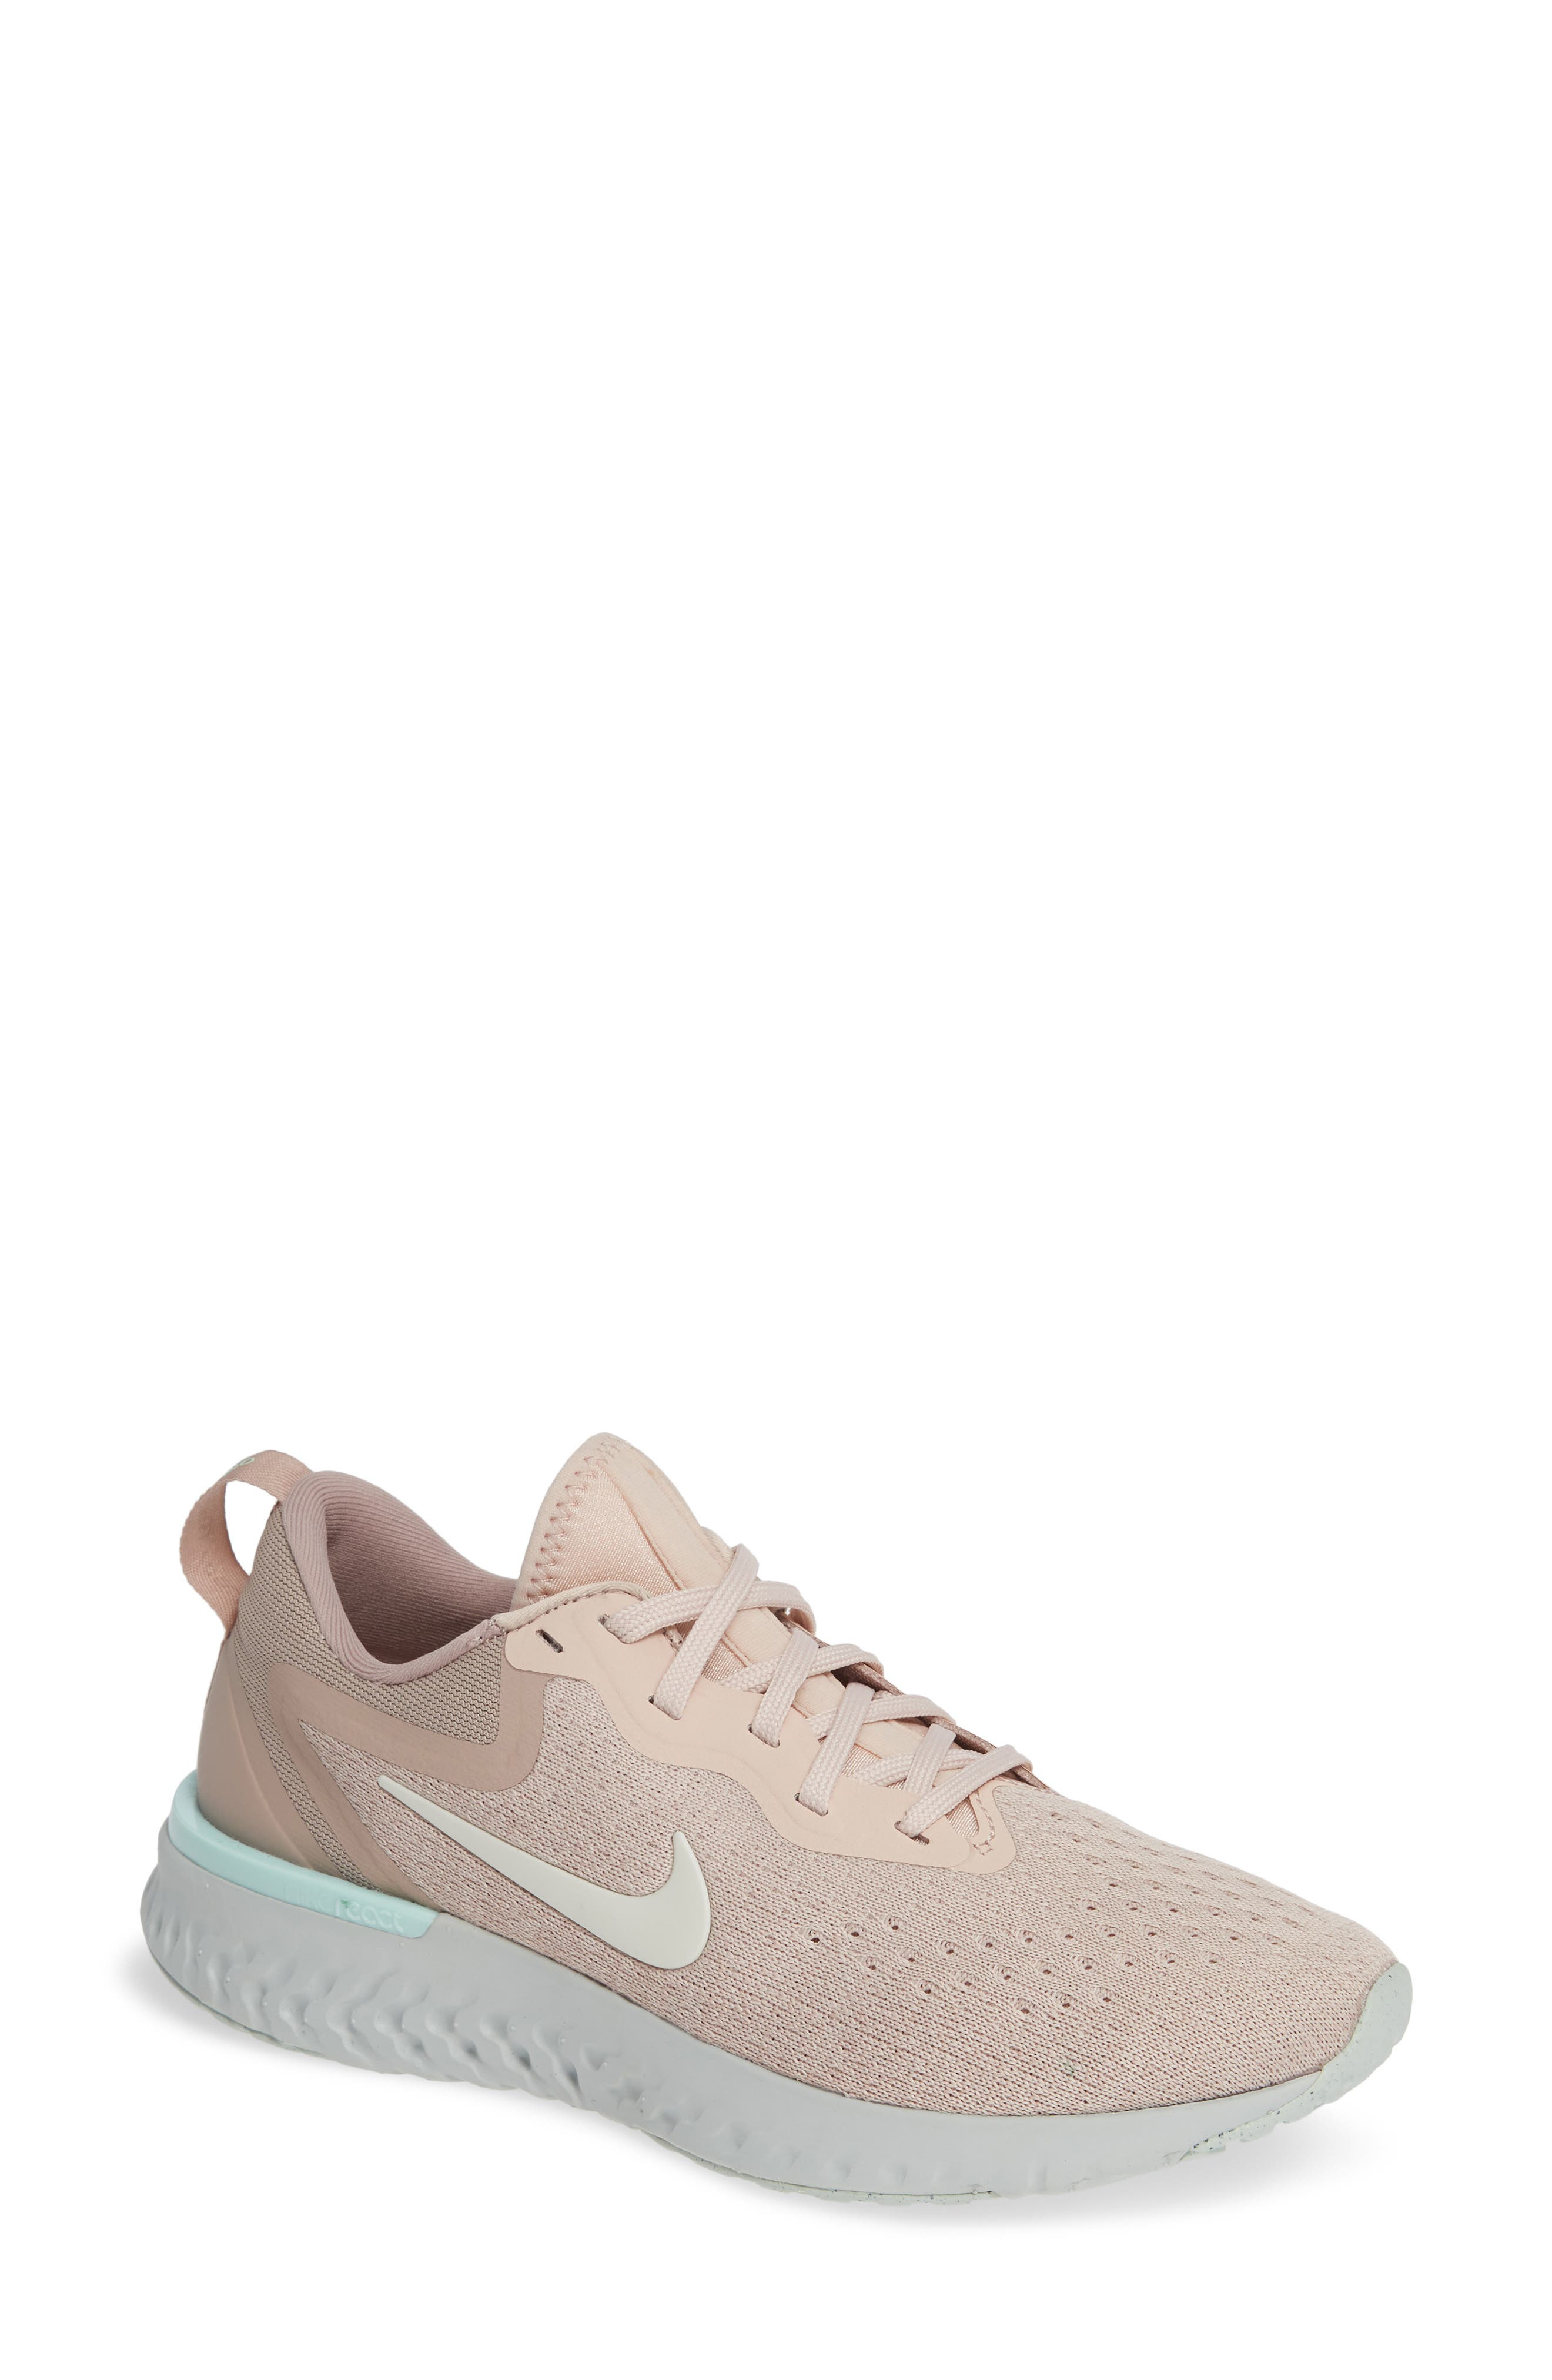 Odyssey React Running Shoe,                         Main,                         color, BEIGE/ PHANTOM-DIFFUSED TAUPE